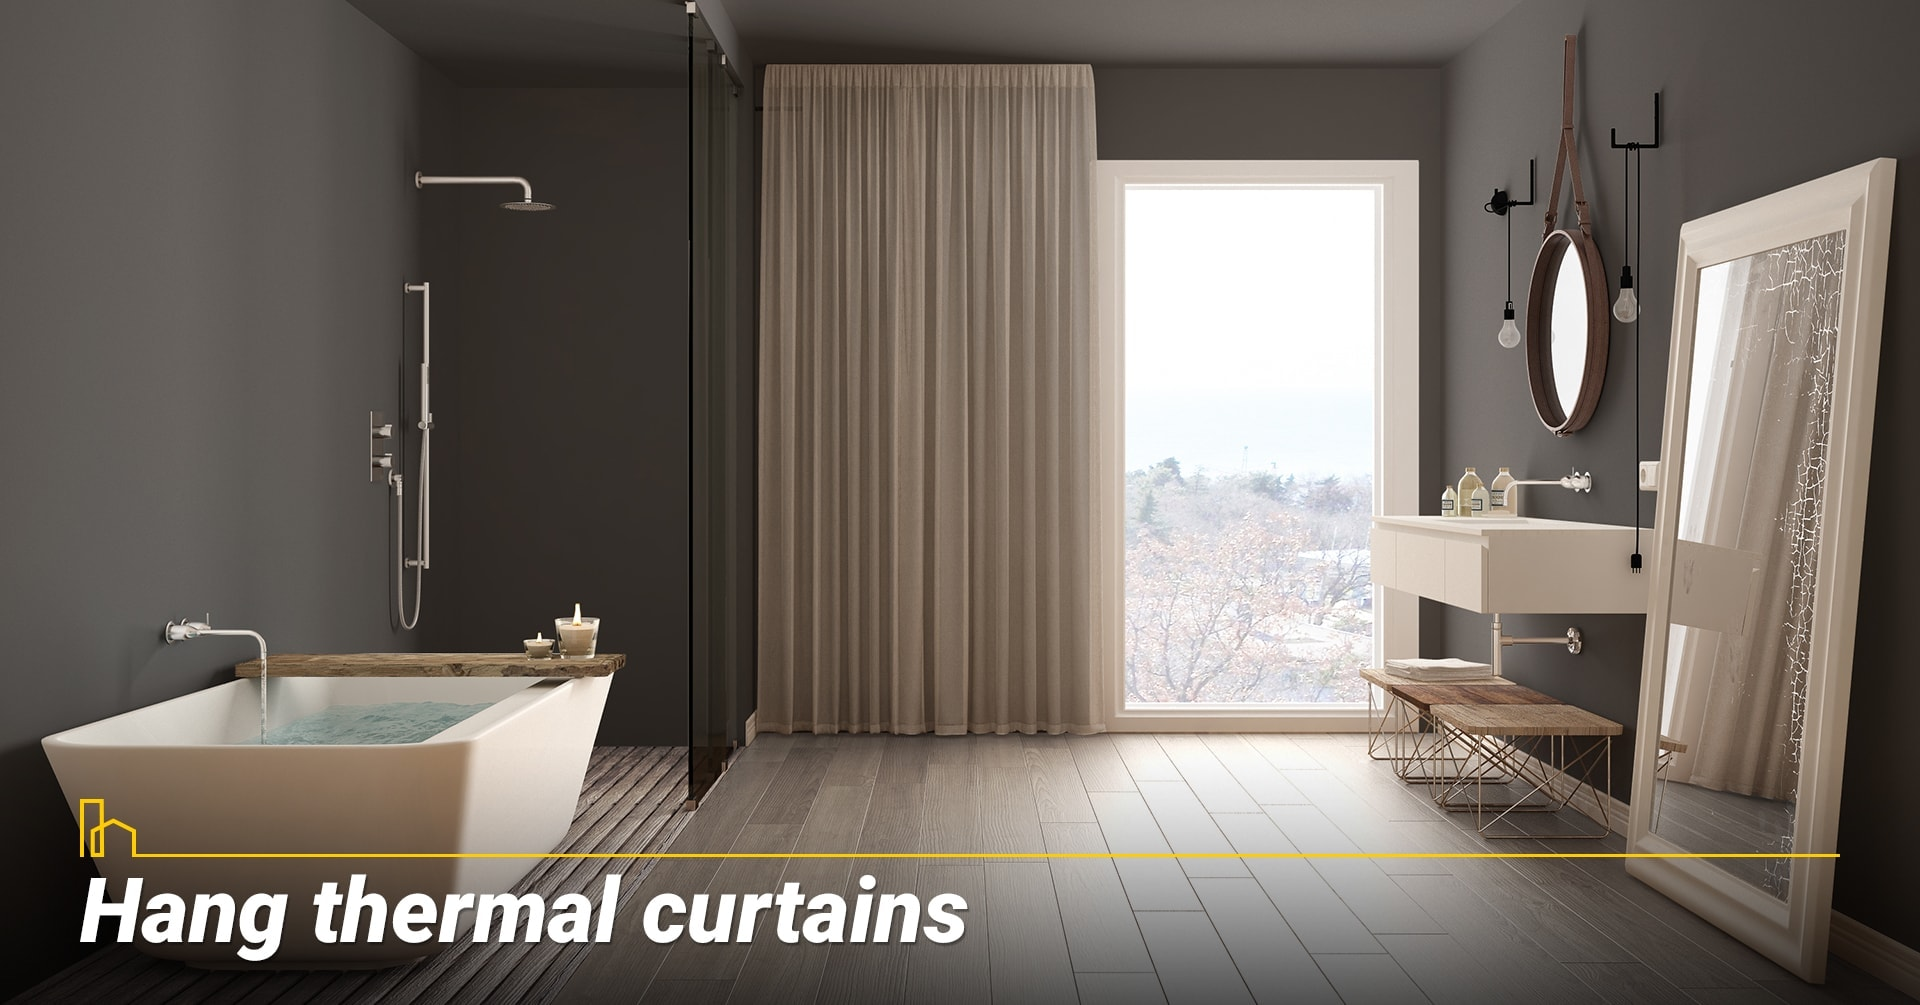 Hang thermal curtains, use thermal curtains to block cold weather